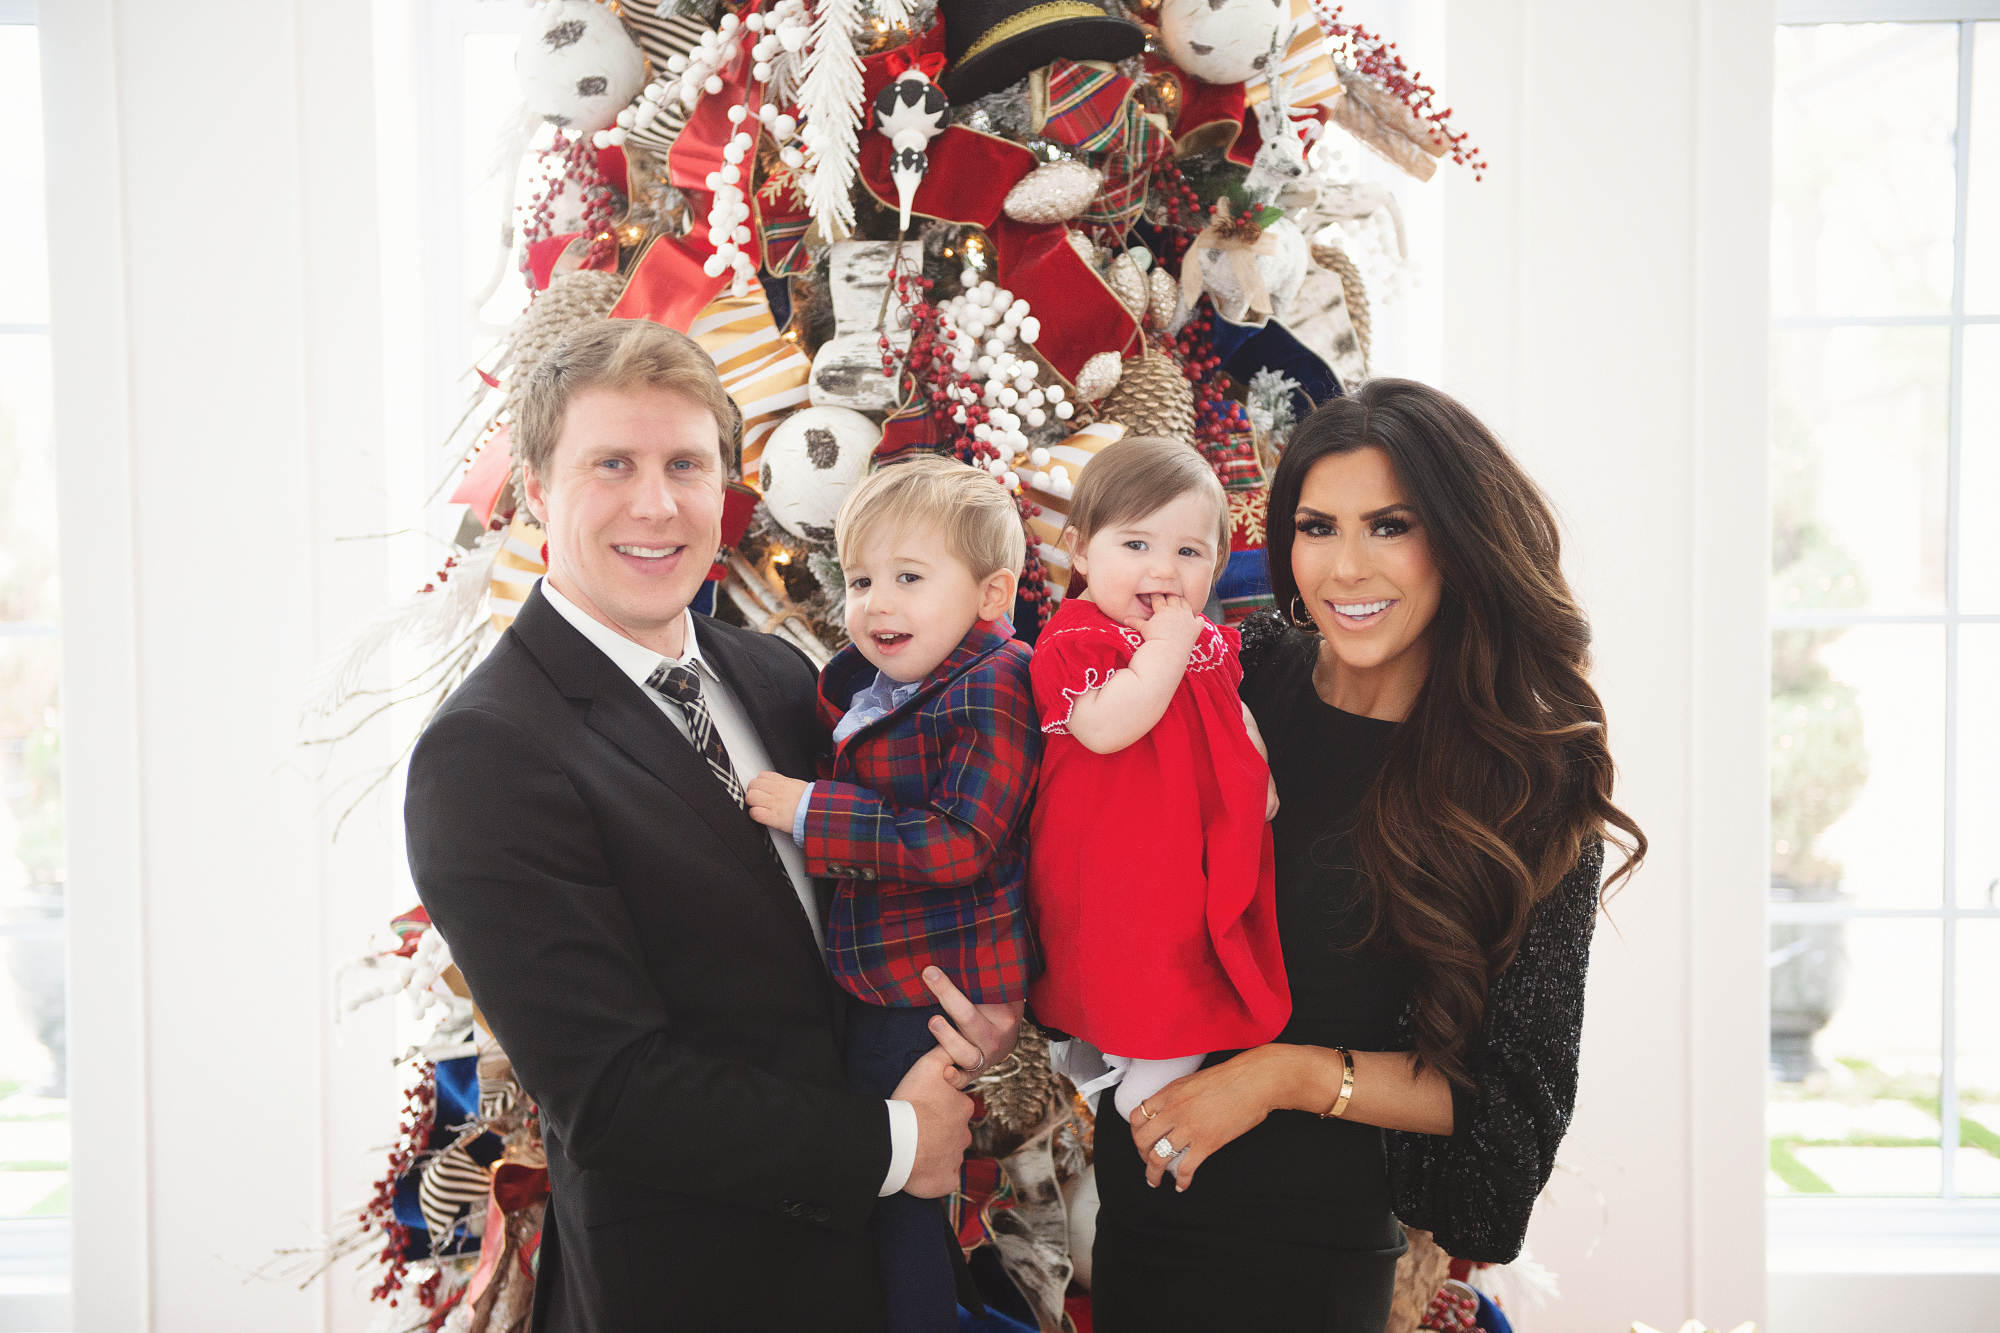 family Christmas card outfit inspiration, smocked Christmas dress baby, baby boy fashion Christmas, pinterest Christmas tree decor, shop hello holidays, Emily Gemma, the sweetest thing blog | Merry Christmas Wishes To You & Yours🎁❤️🎄 [Our Christmas Card 2019] by popular Oklahoma life and style blog, The Sweetest Thing: image a family standing in front of their Christmas tree and wearing Smocked Auctions MERRY CHRISTMAS SMOCKED BISHOP RED CORDUROY dress, Zara BASIC SERGED SKINNY JEANS, Zara  LEATHER LOAFERS, Janie and Jack POPLIN SHIRT, Janie and Jack PLAID WOOL BLAZER, Nordstrom Burberry men's tie, Nordstrom Boss Huge/Genius Trim Fit Solid Wool Suit, CHRISTIAN LOUBOUTIN So Kate 120 suede pumps, and Nordstrom Eliza J Long Sequin Sleeve Sheath Dress.